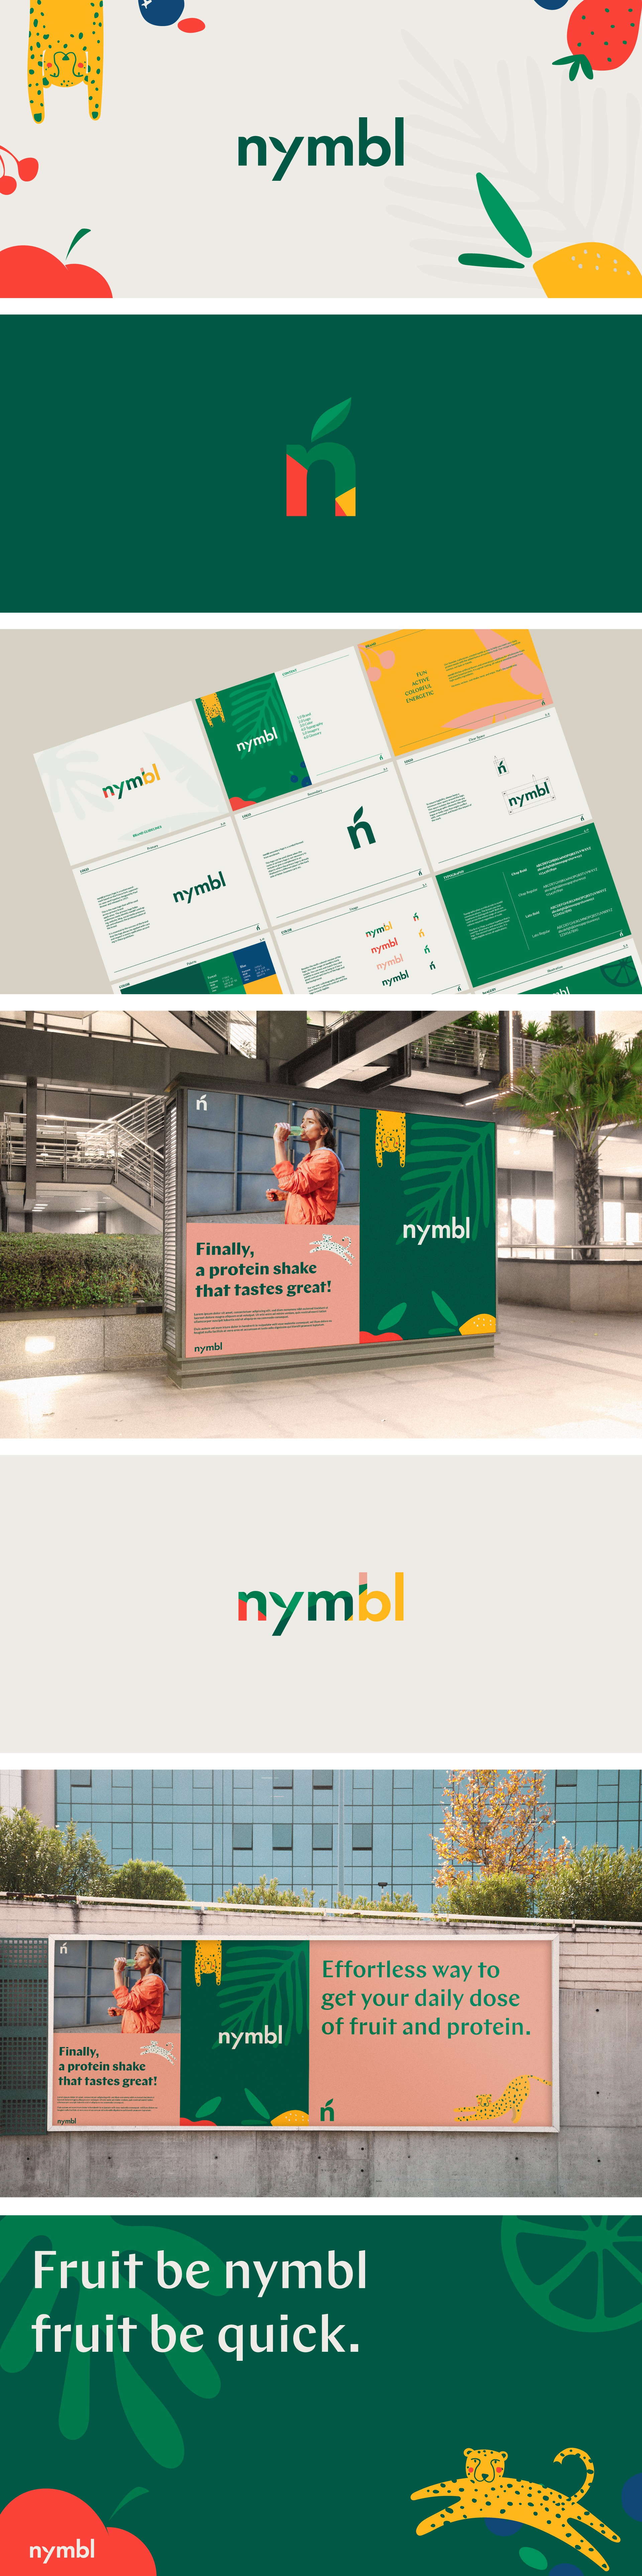 branding for fruit-based protein drink: nymbl